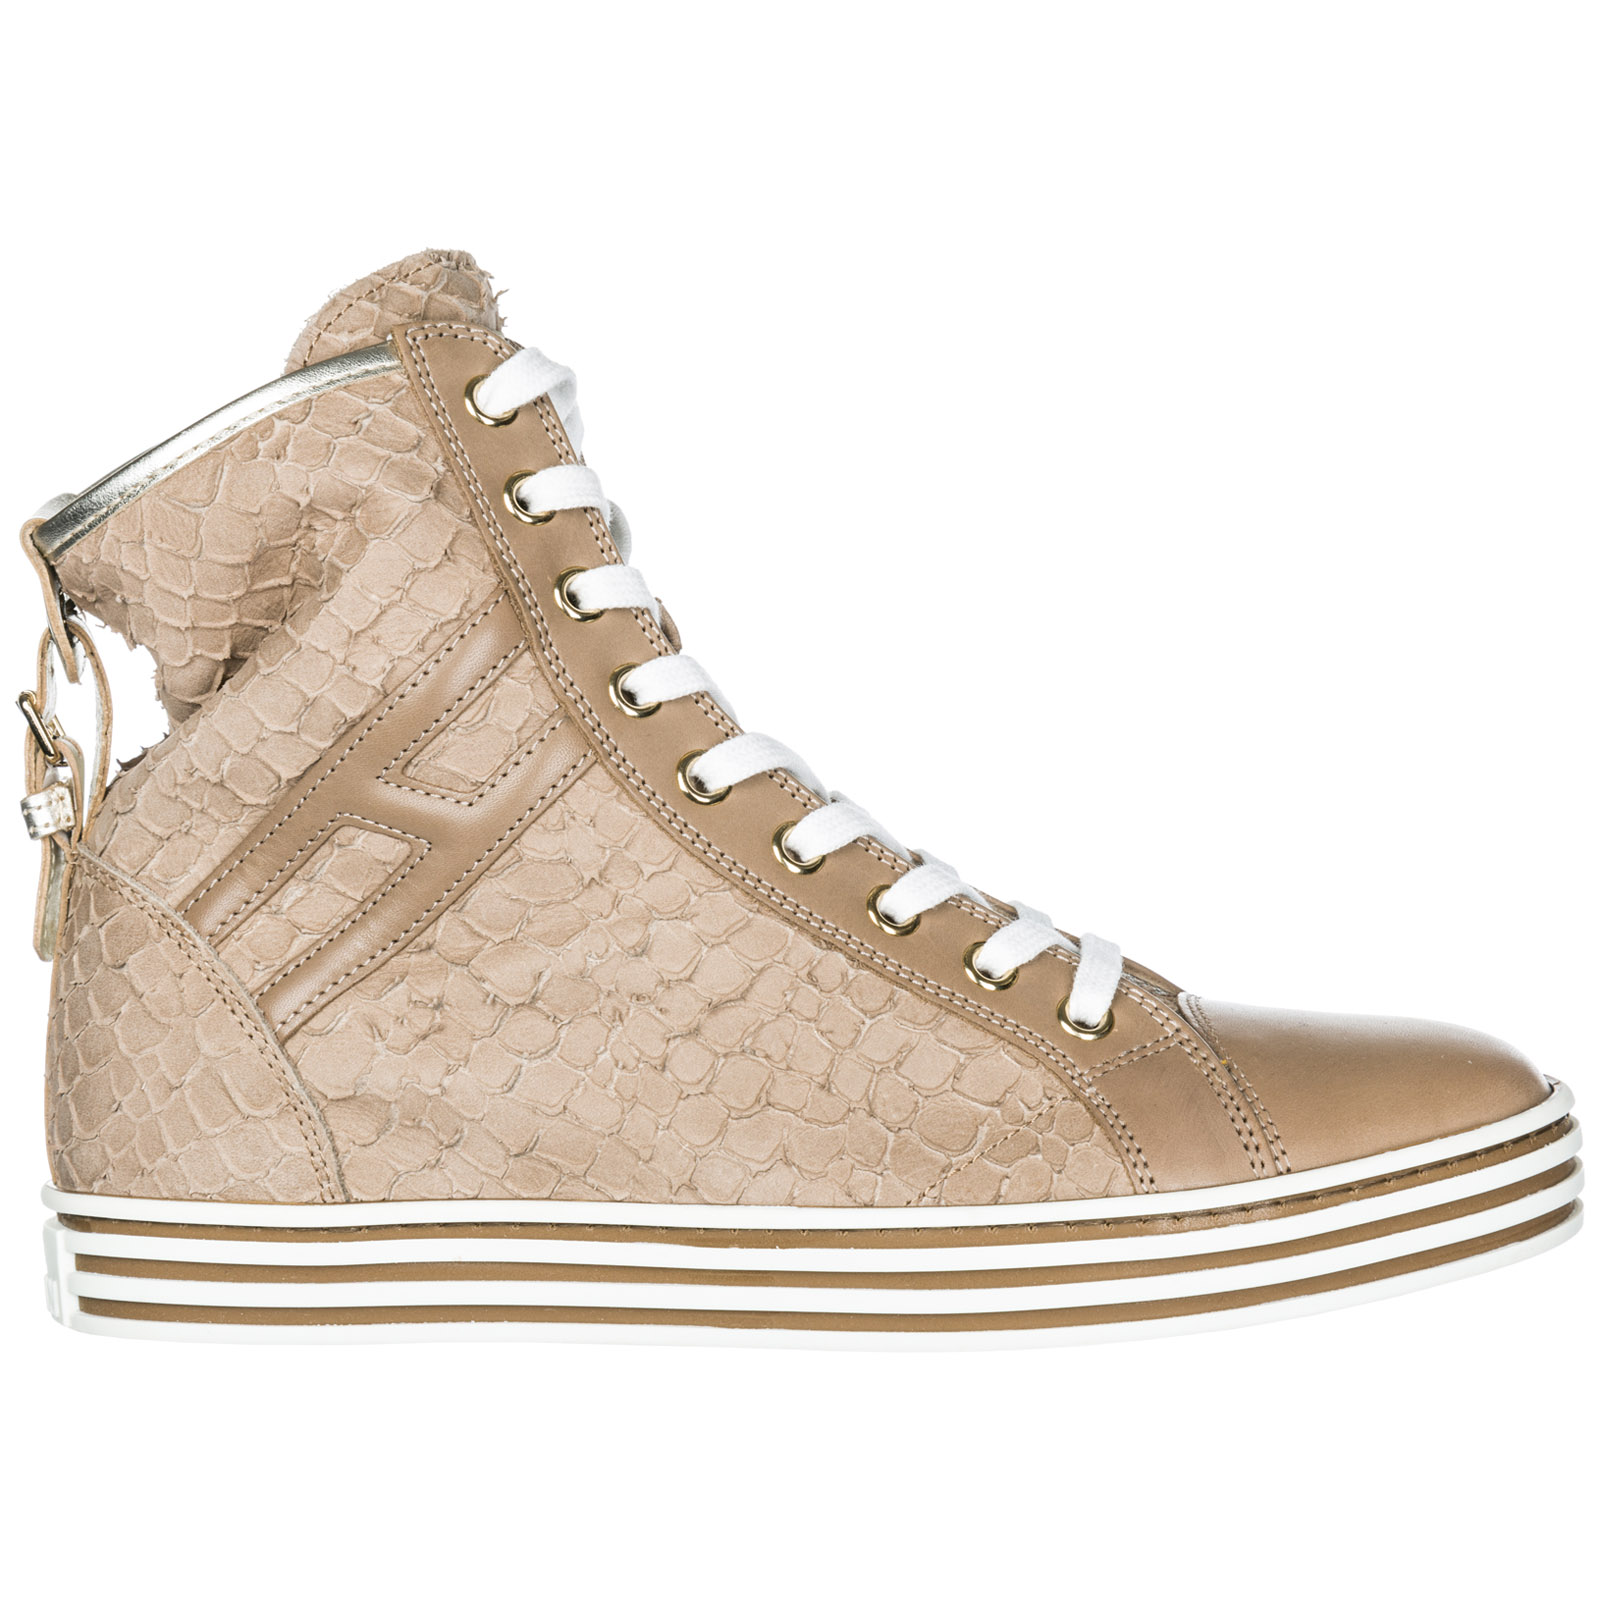 Hogan Rebel Women's Shoes High Top Leather Trainers Sneakers R182 ...